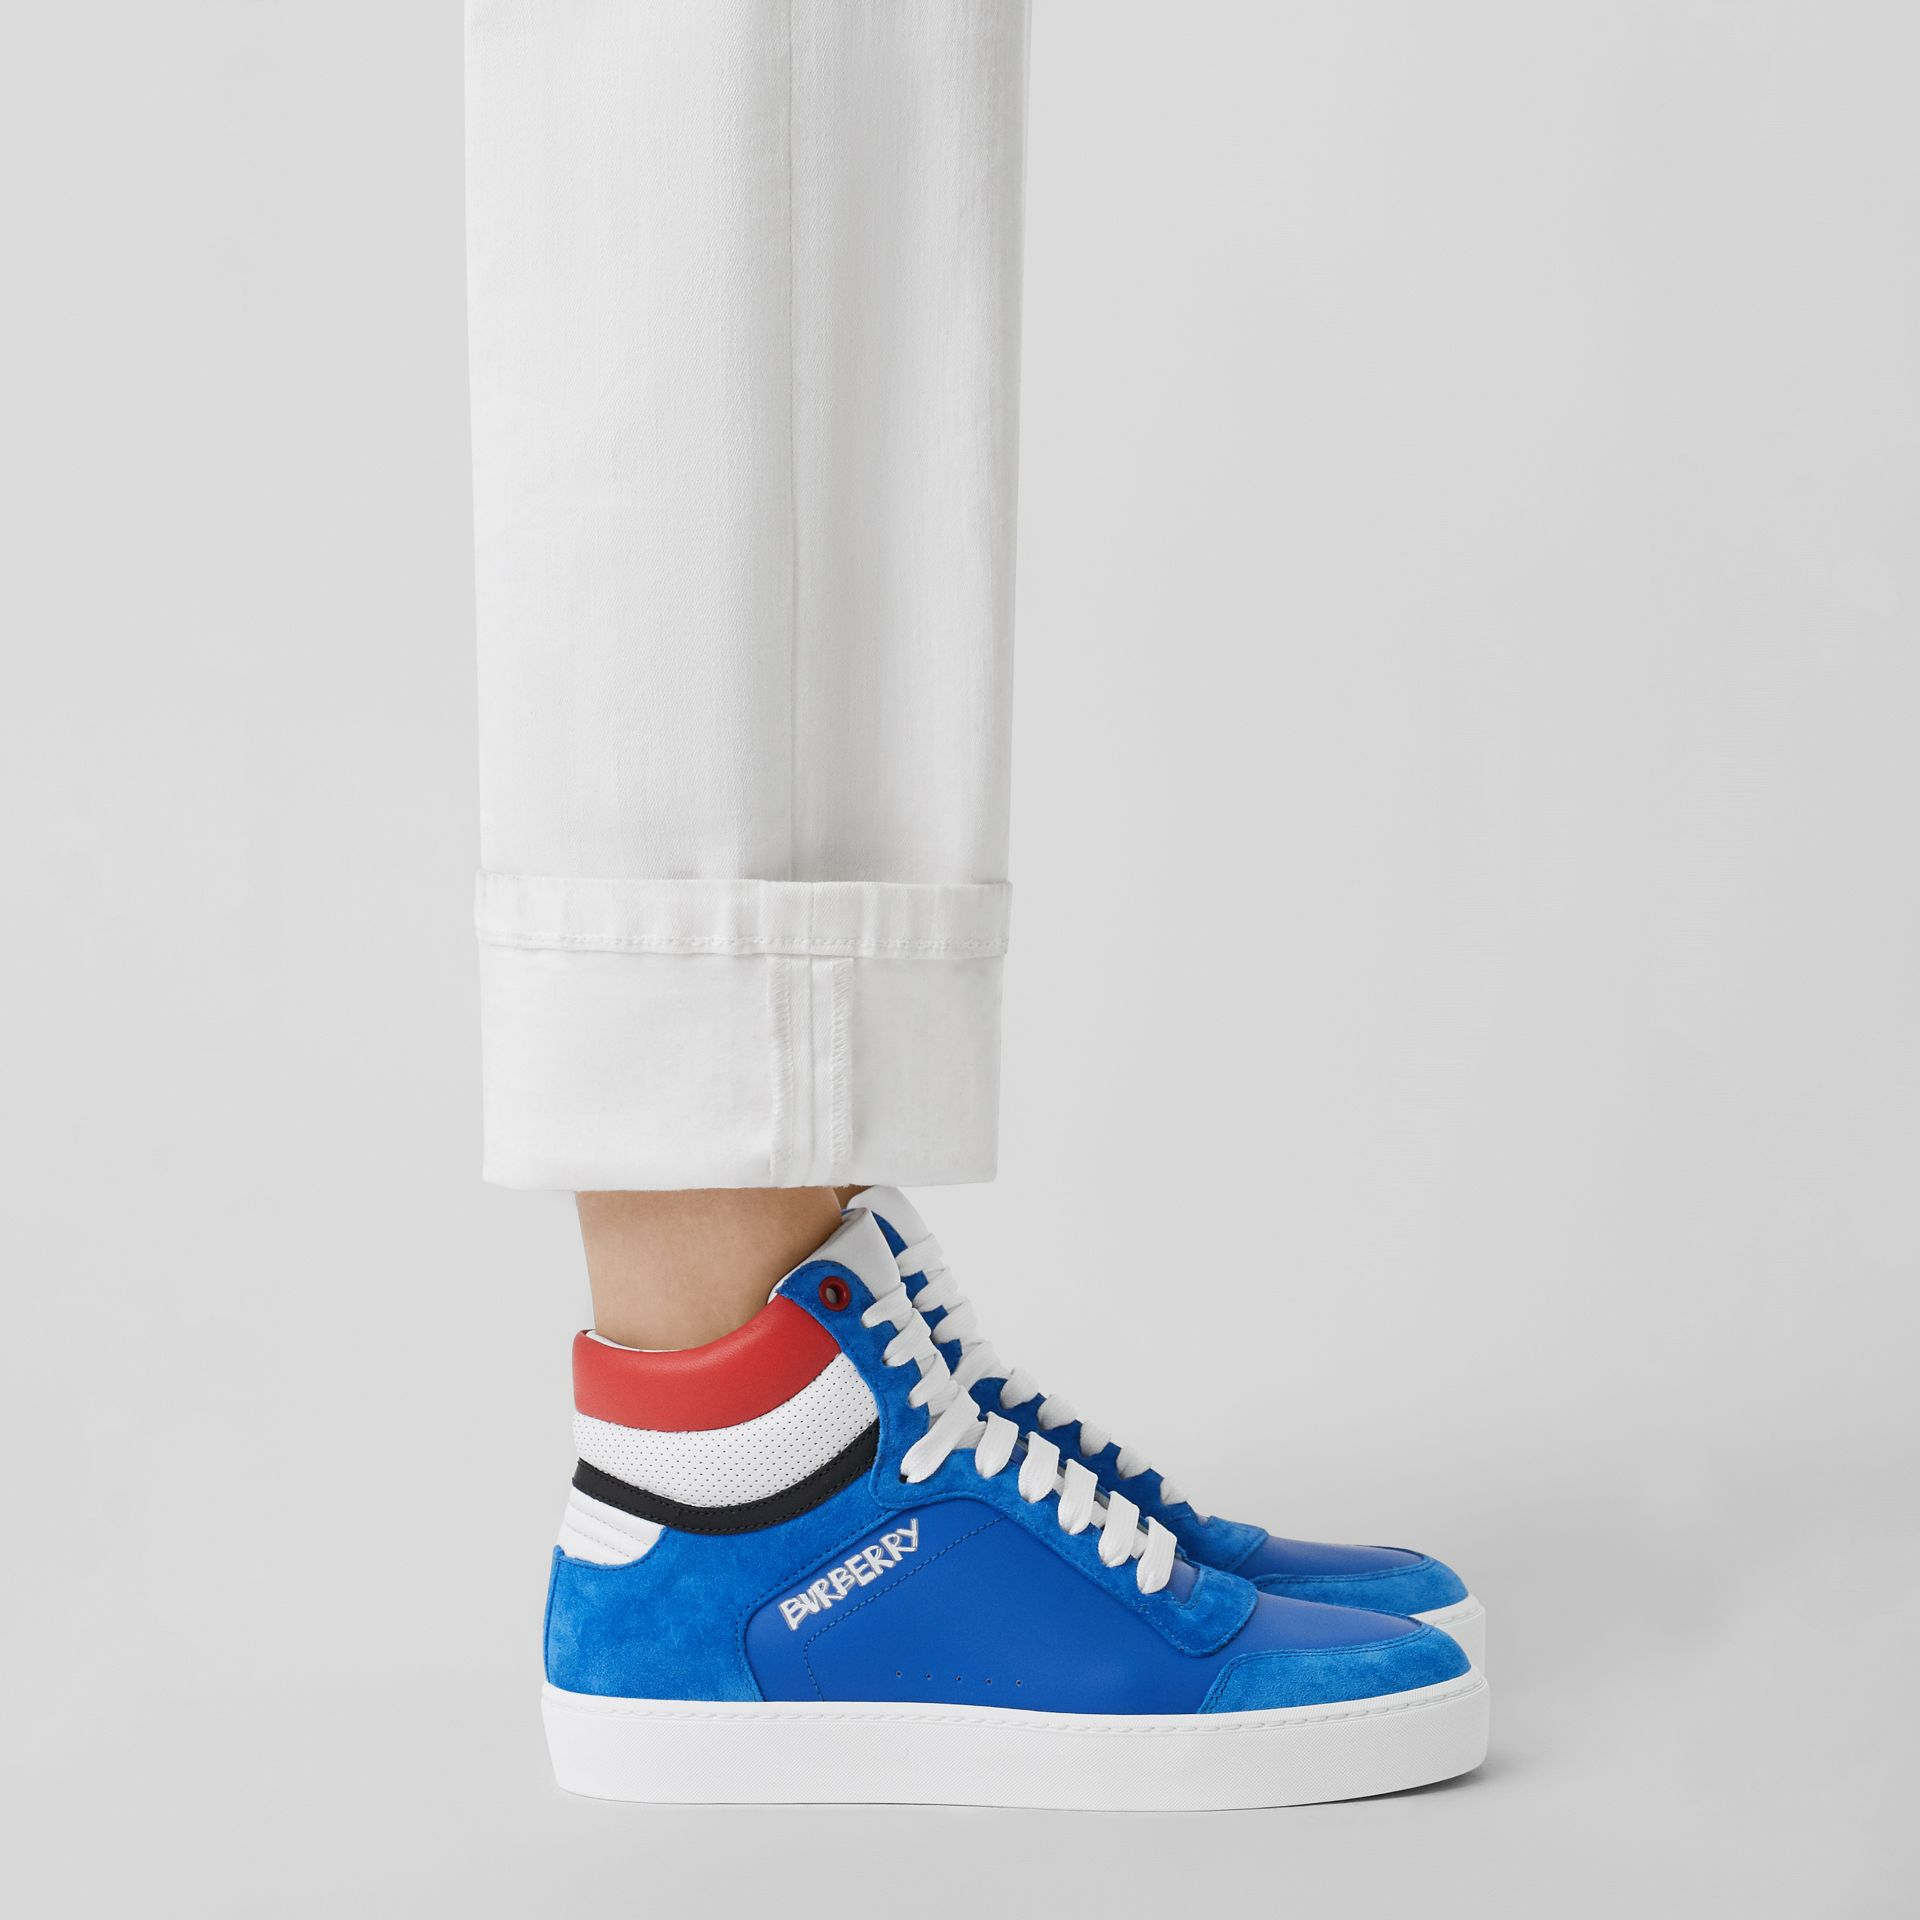 Leather and Suede High-top Sneakers in Bright Sky Blue - Women | Burberry Hong Kong - gallery image 2